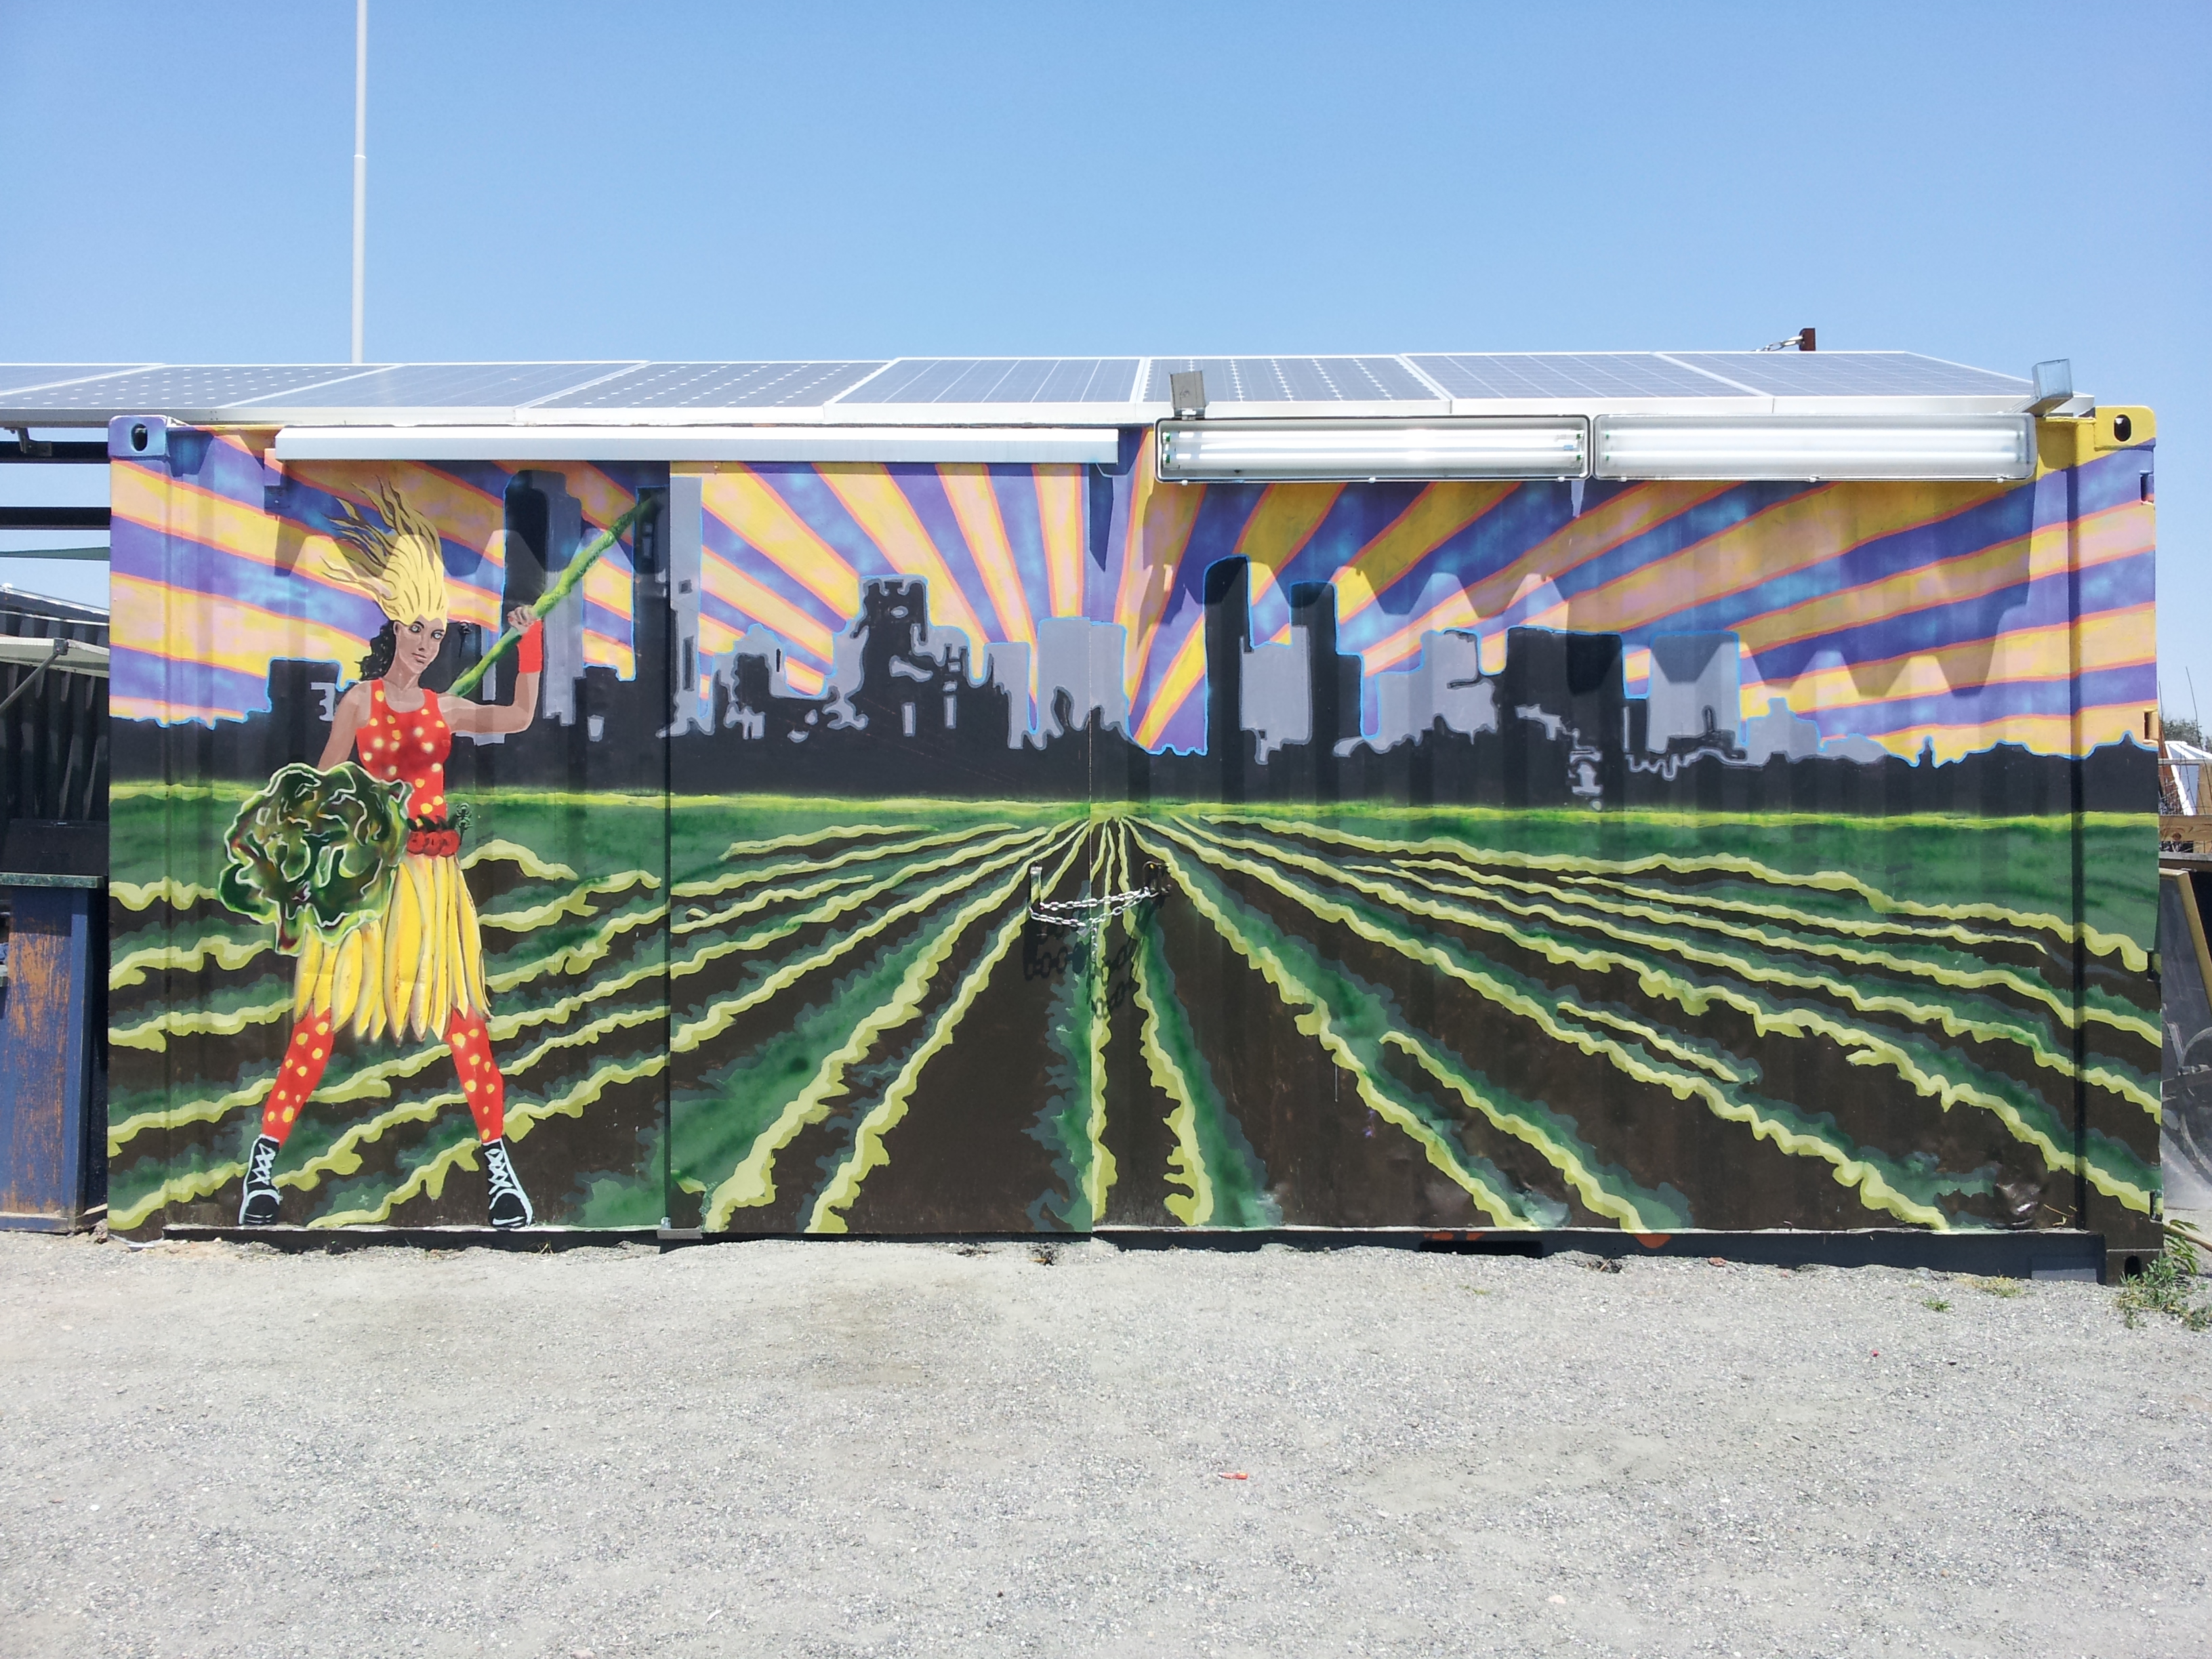 Go to the Three trailer pod murals at Sustainable Park page